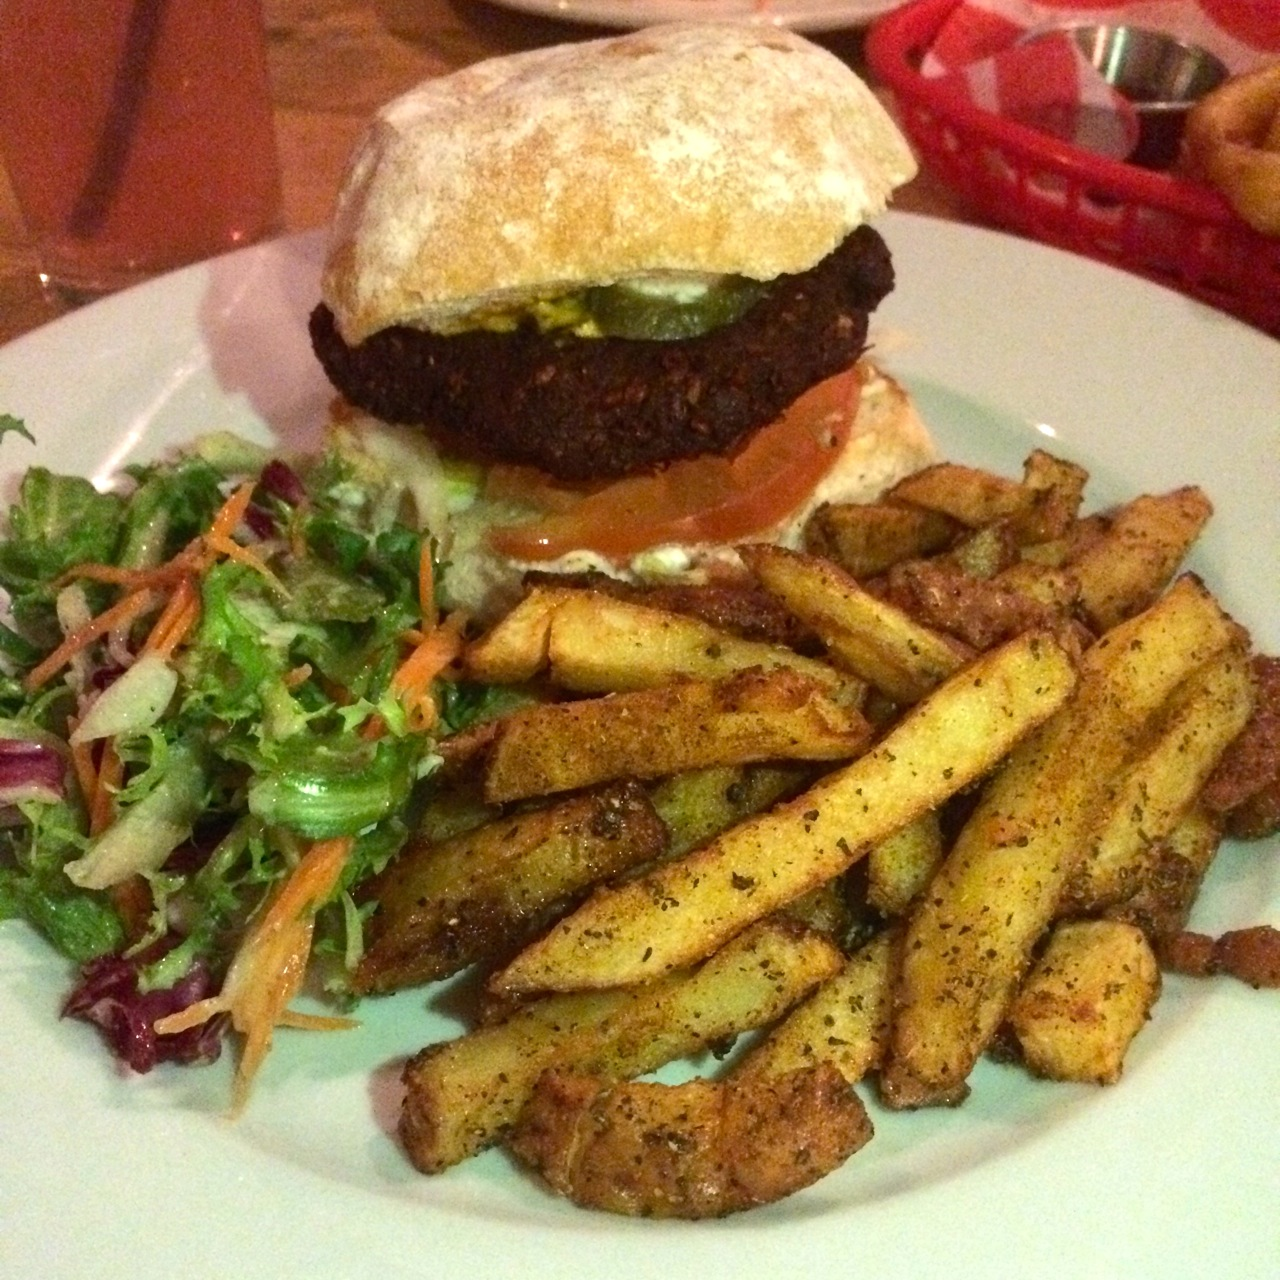 https://i1.wp.com/fatgayvegan.com/wp-content/uploads/2015/12/burger-and-chips.jpg?fit=1280%2C1280